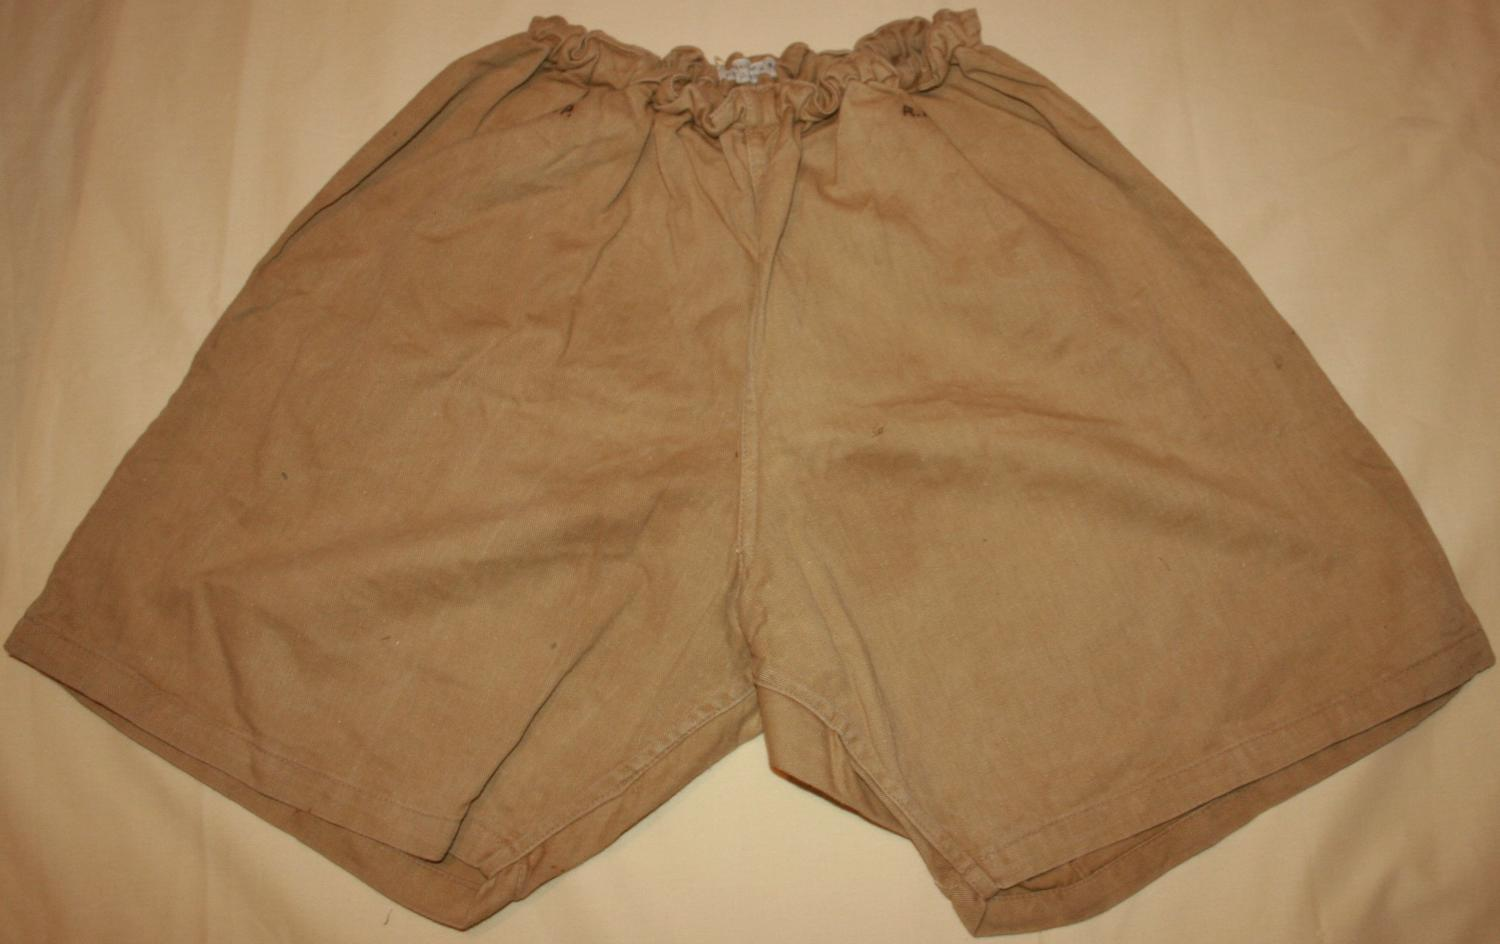 A PAIR OF KD PT SHORTS 1940 DATED